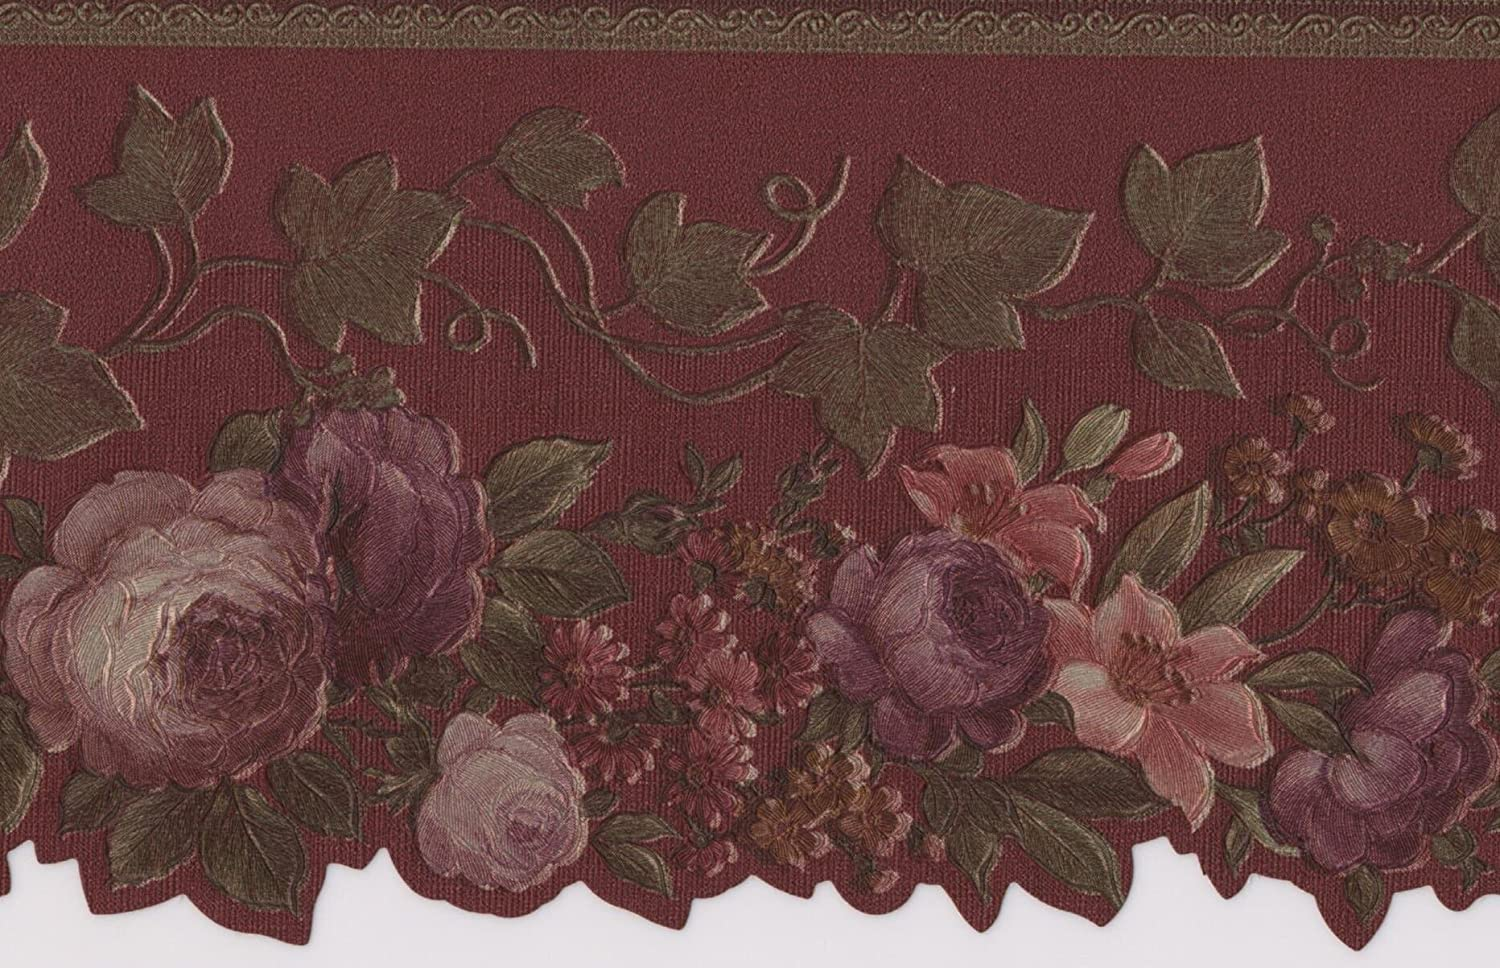 Pink Red Purple Blooming Roses Vintage Floral Wallpaper Border